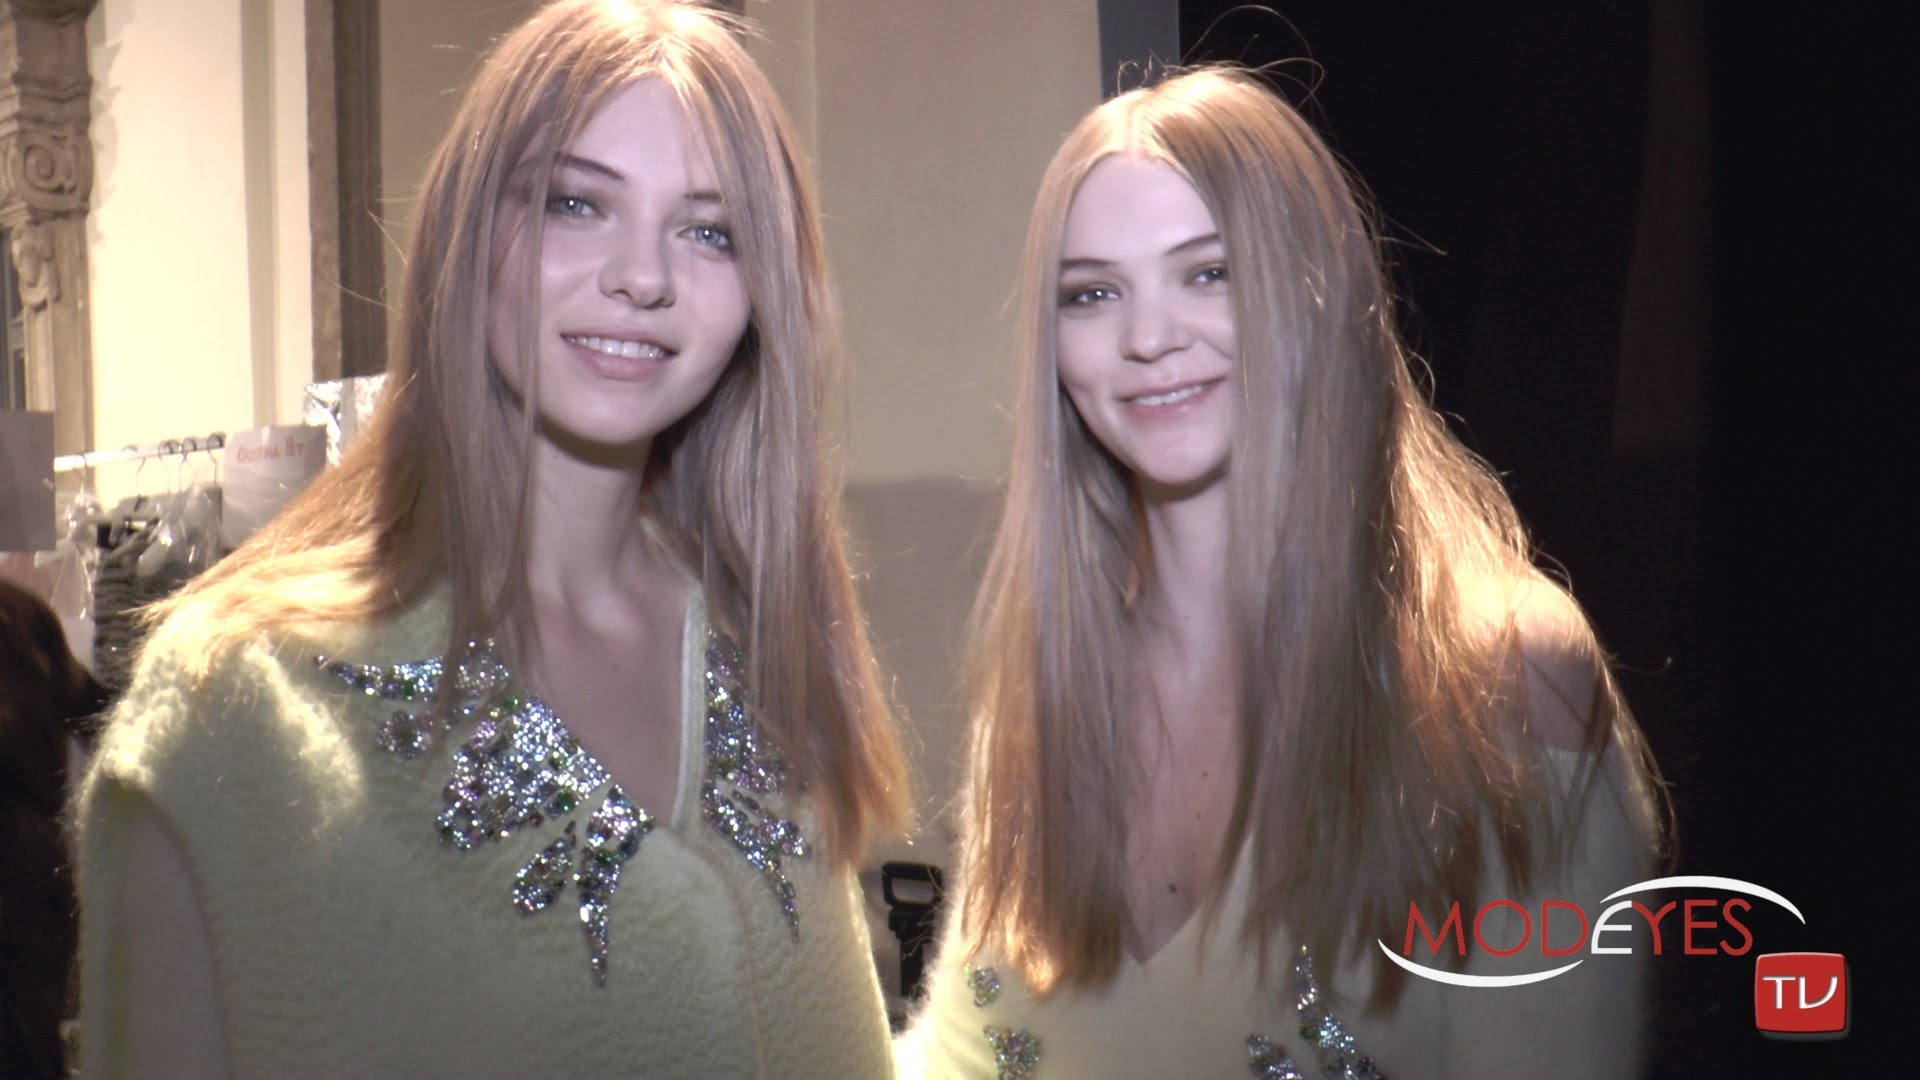 GENNY Fall Winter 2015-16 Exclusive from Fashion Show, Backstage and Runway